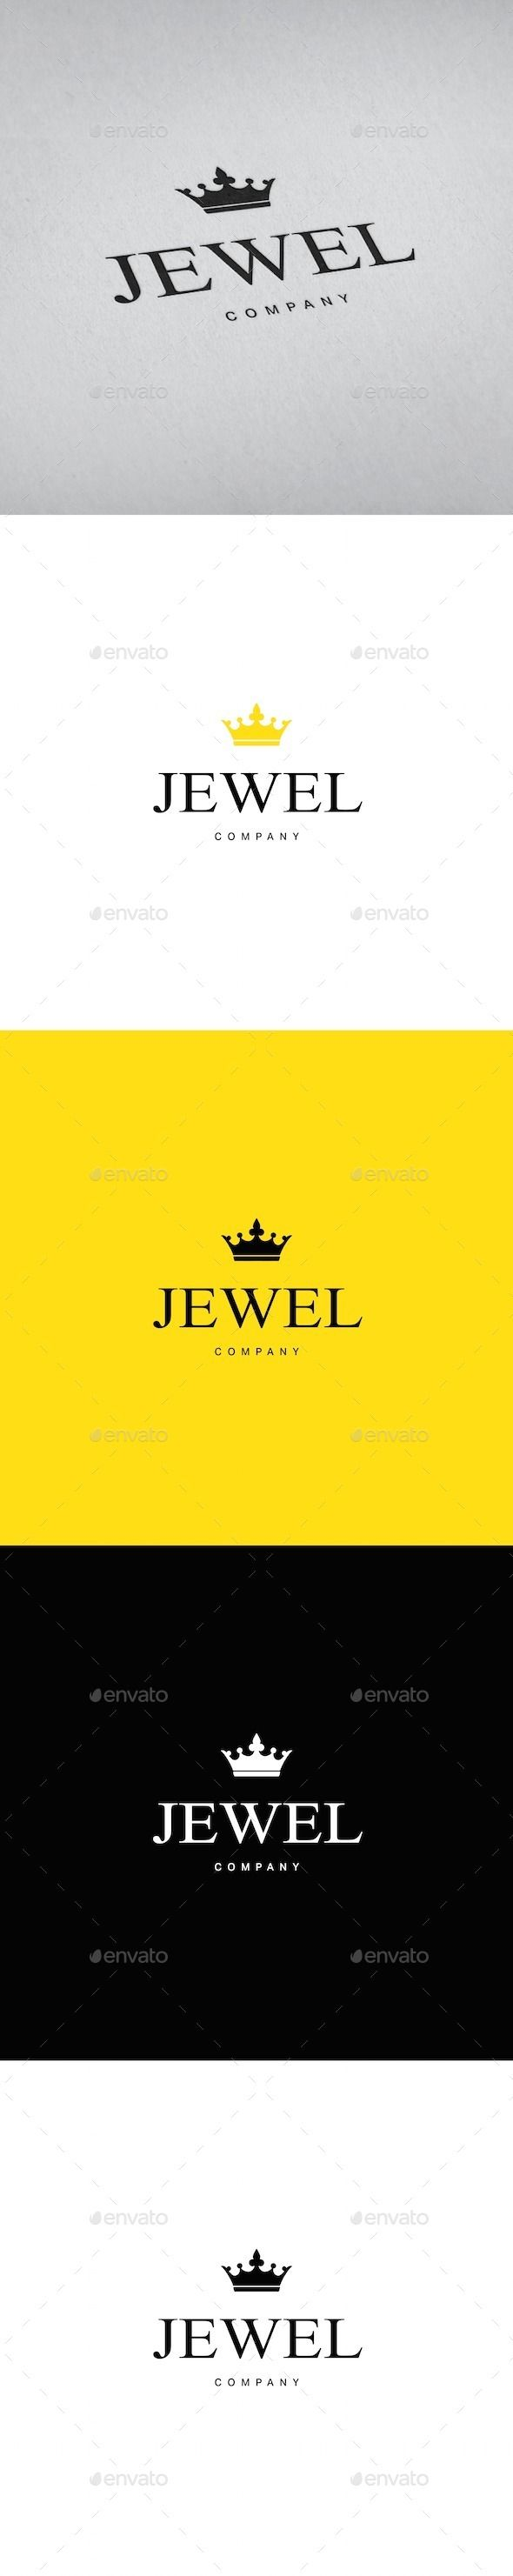 Jewellery Crown  - Logo Design Template Vector #logotype Download it here: http://graphicriver.net/item/jewellery-crown-logo-template/9182609?s_rank=828?ref=nexion